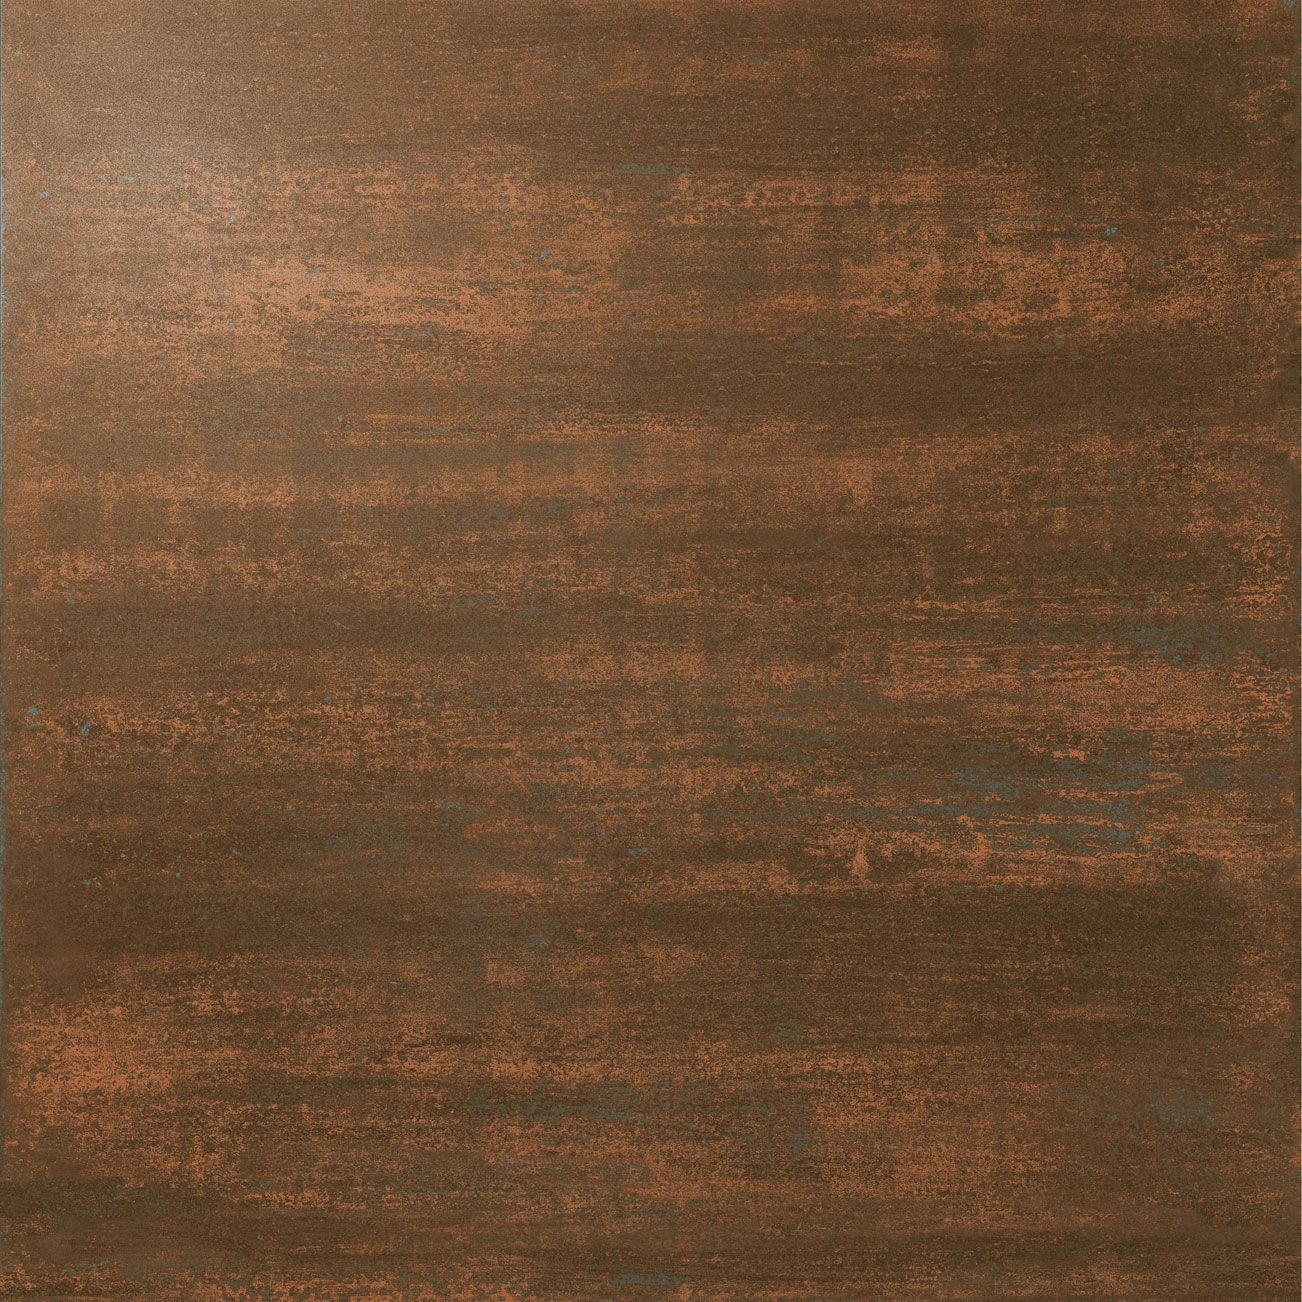 inalco new oxide series touch its relief just like classic corten steel slimmker. Black Bedroom Furniture Sets. Home Design Ideas